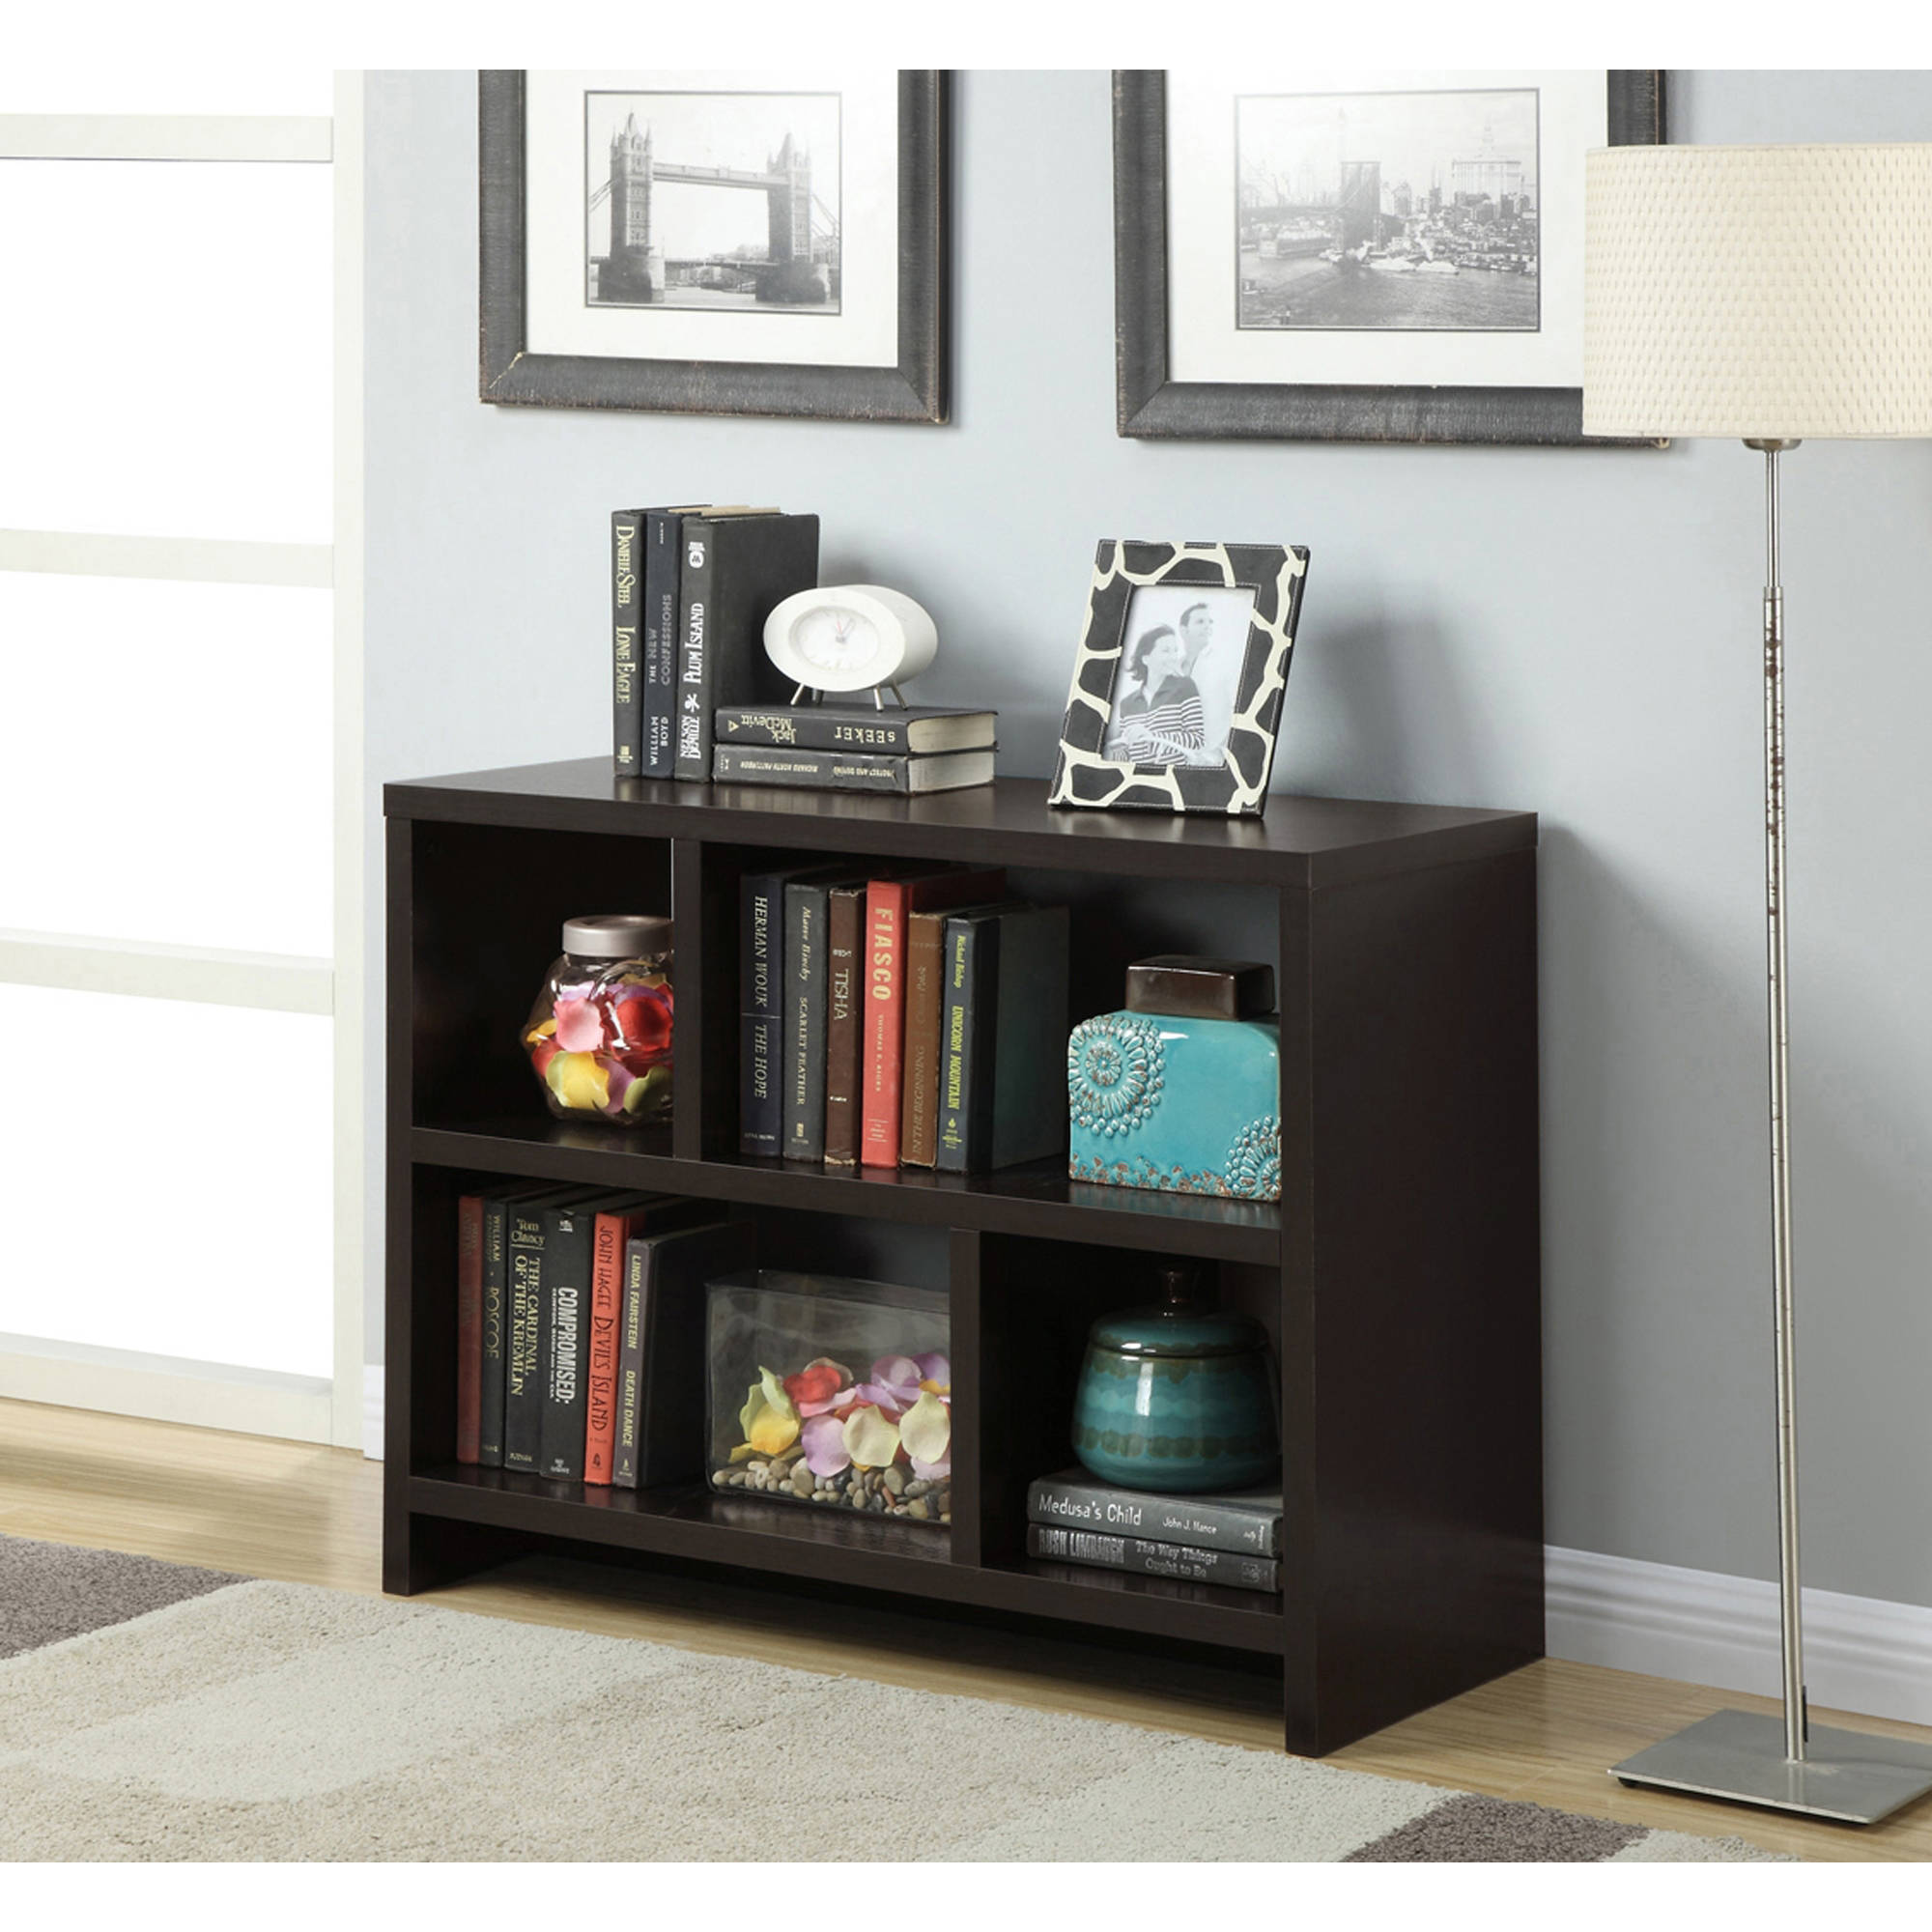 Convenience concepts inc 111085 northfield bookend console table convenience concepts inc 111085 northfield bookend console table about this product picture 1 of 5 geotapseo Image collections